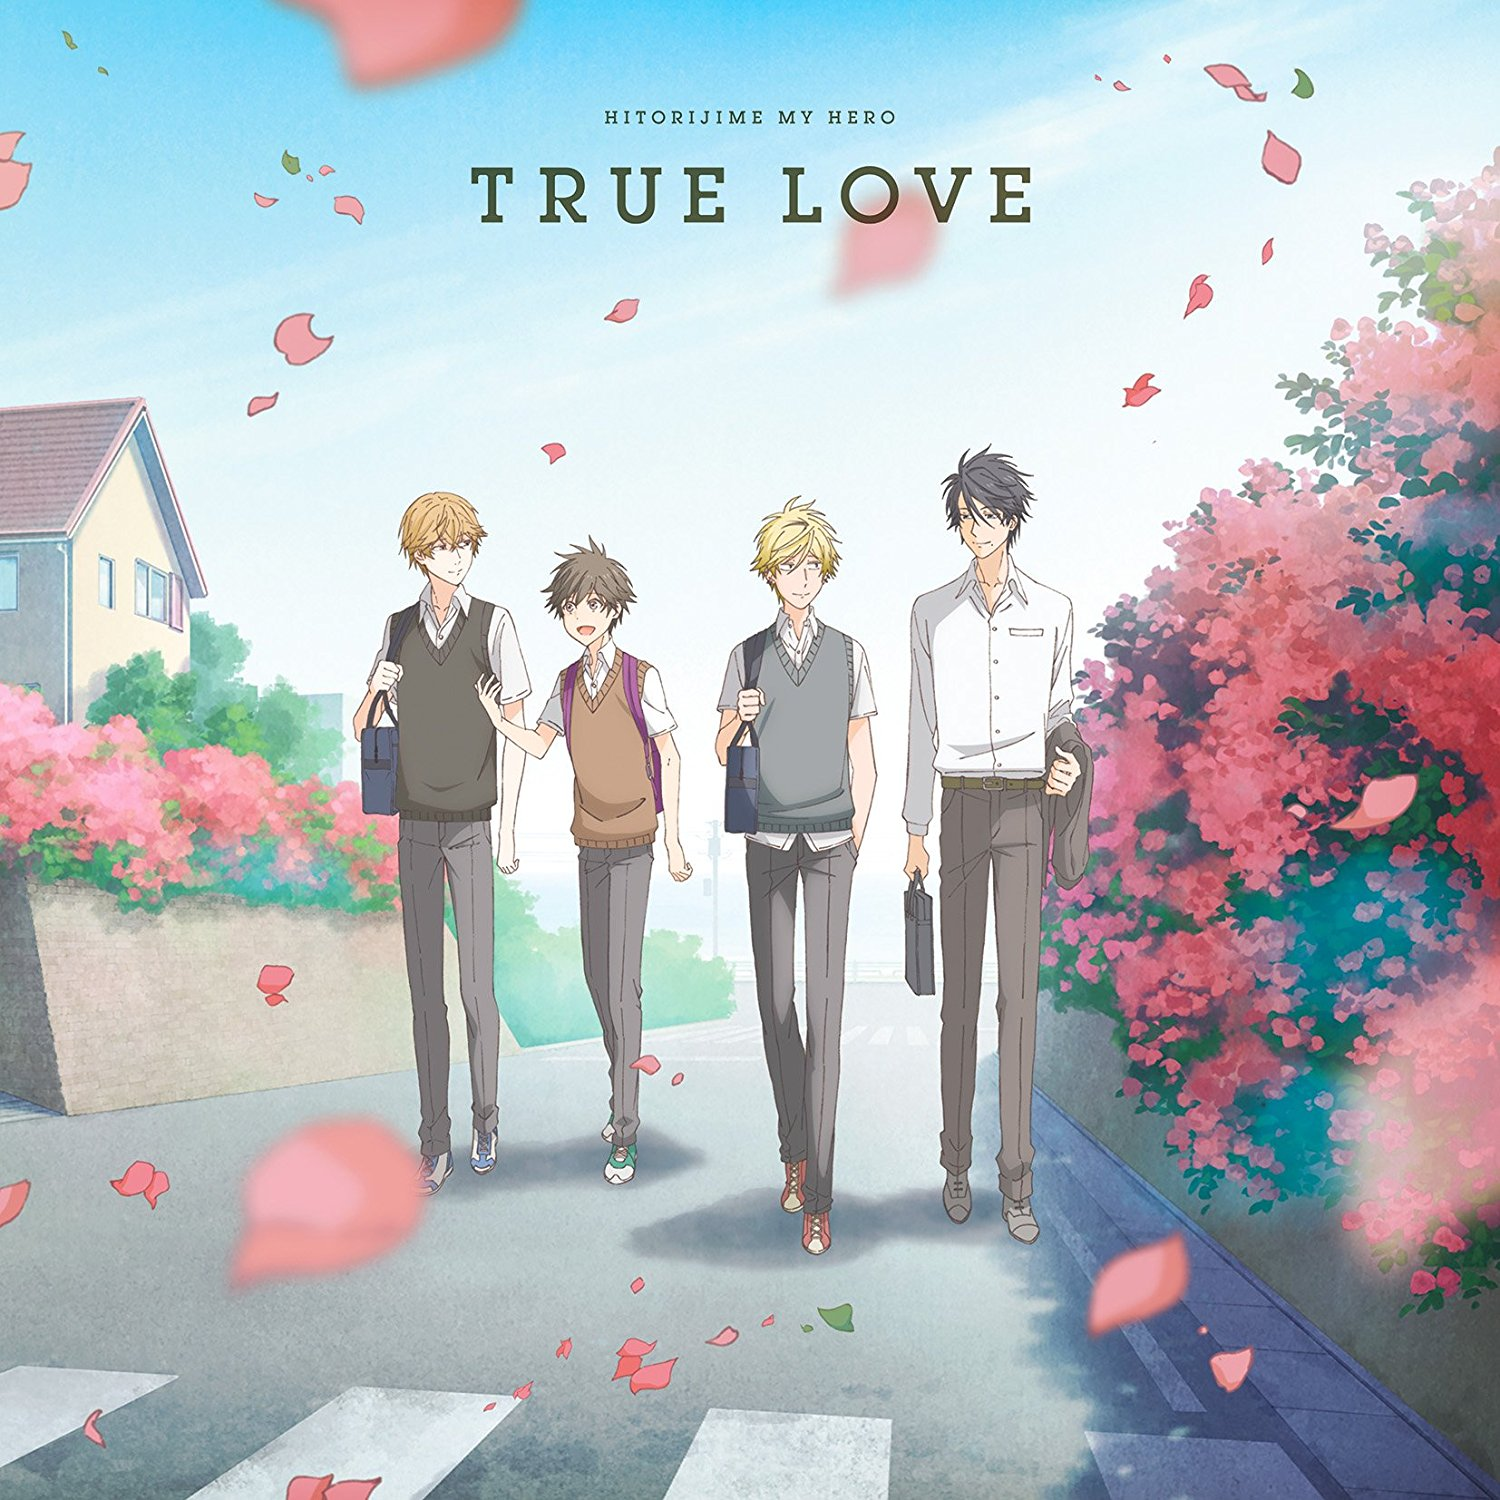 [TOP4] Hitorijime My Hero ED : TRUE LOVE